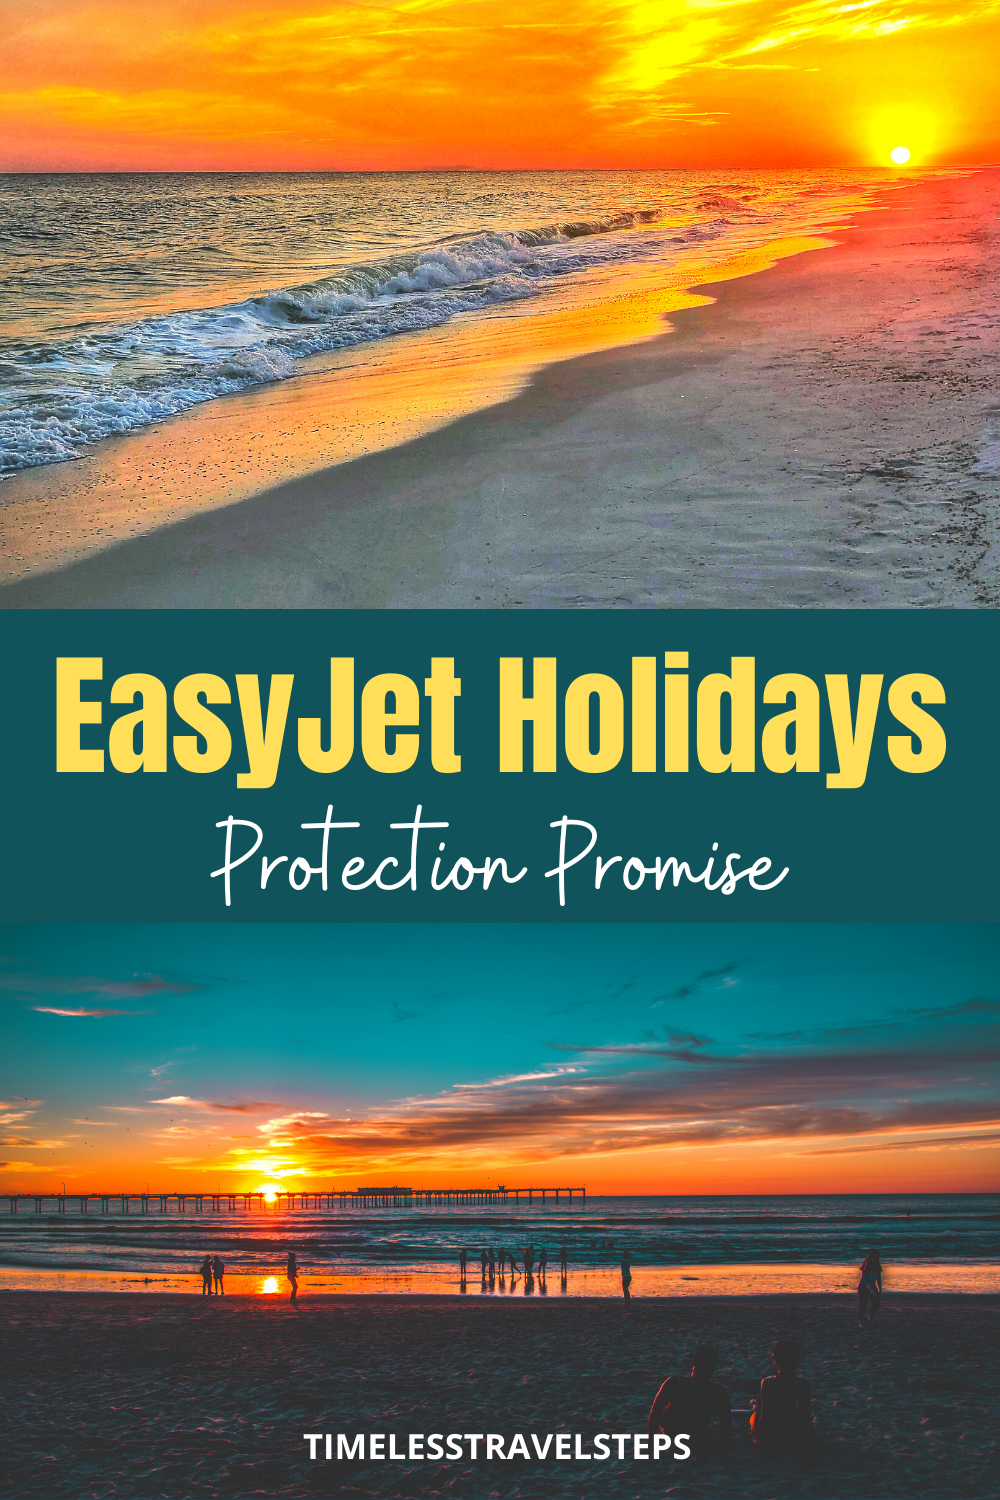 Plan a superb, flexible holiday and have peace of mind in our current climate of travel restrictionwith EasyJet Holidays 5 Protection Promise via @GGeorgina_mytimelessfootsteps/